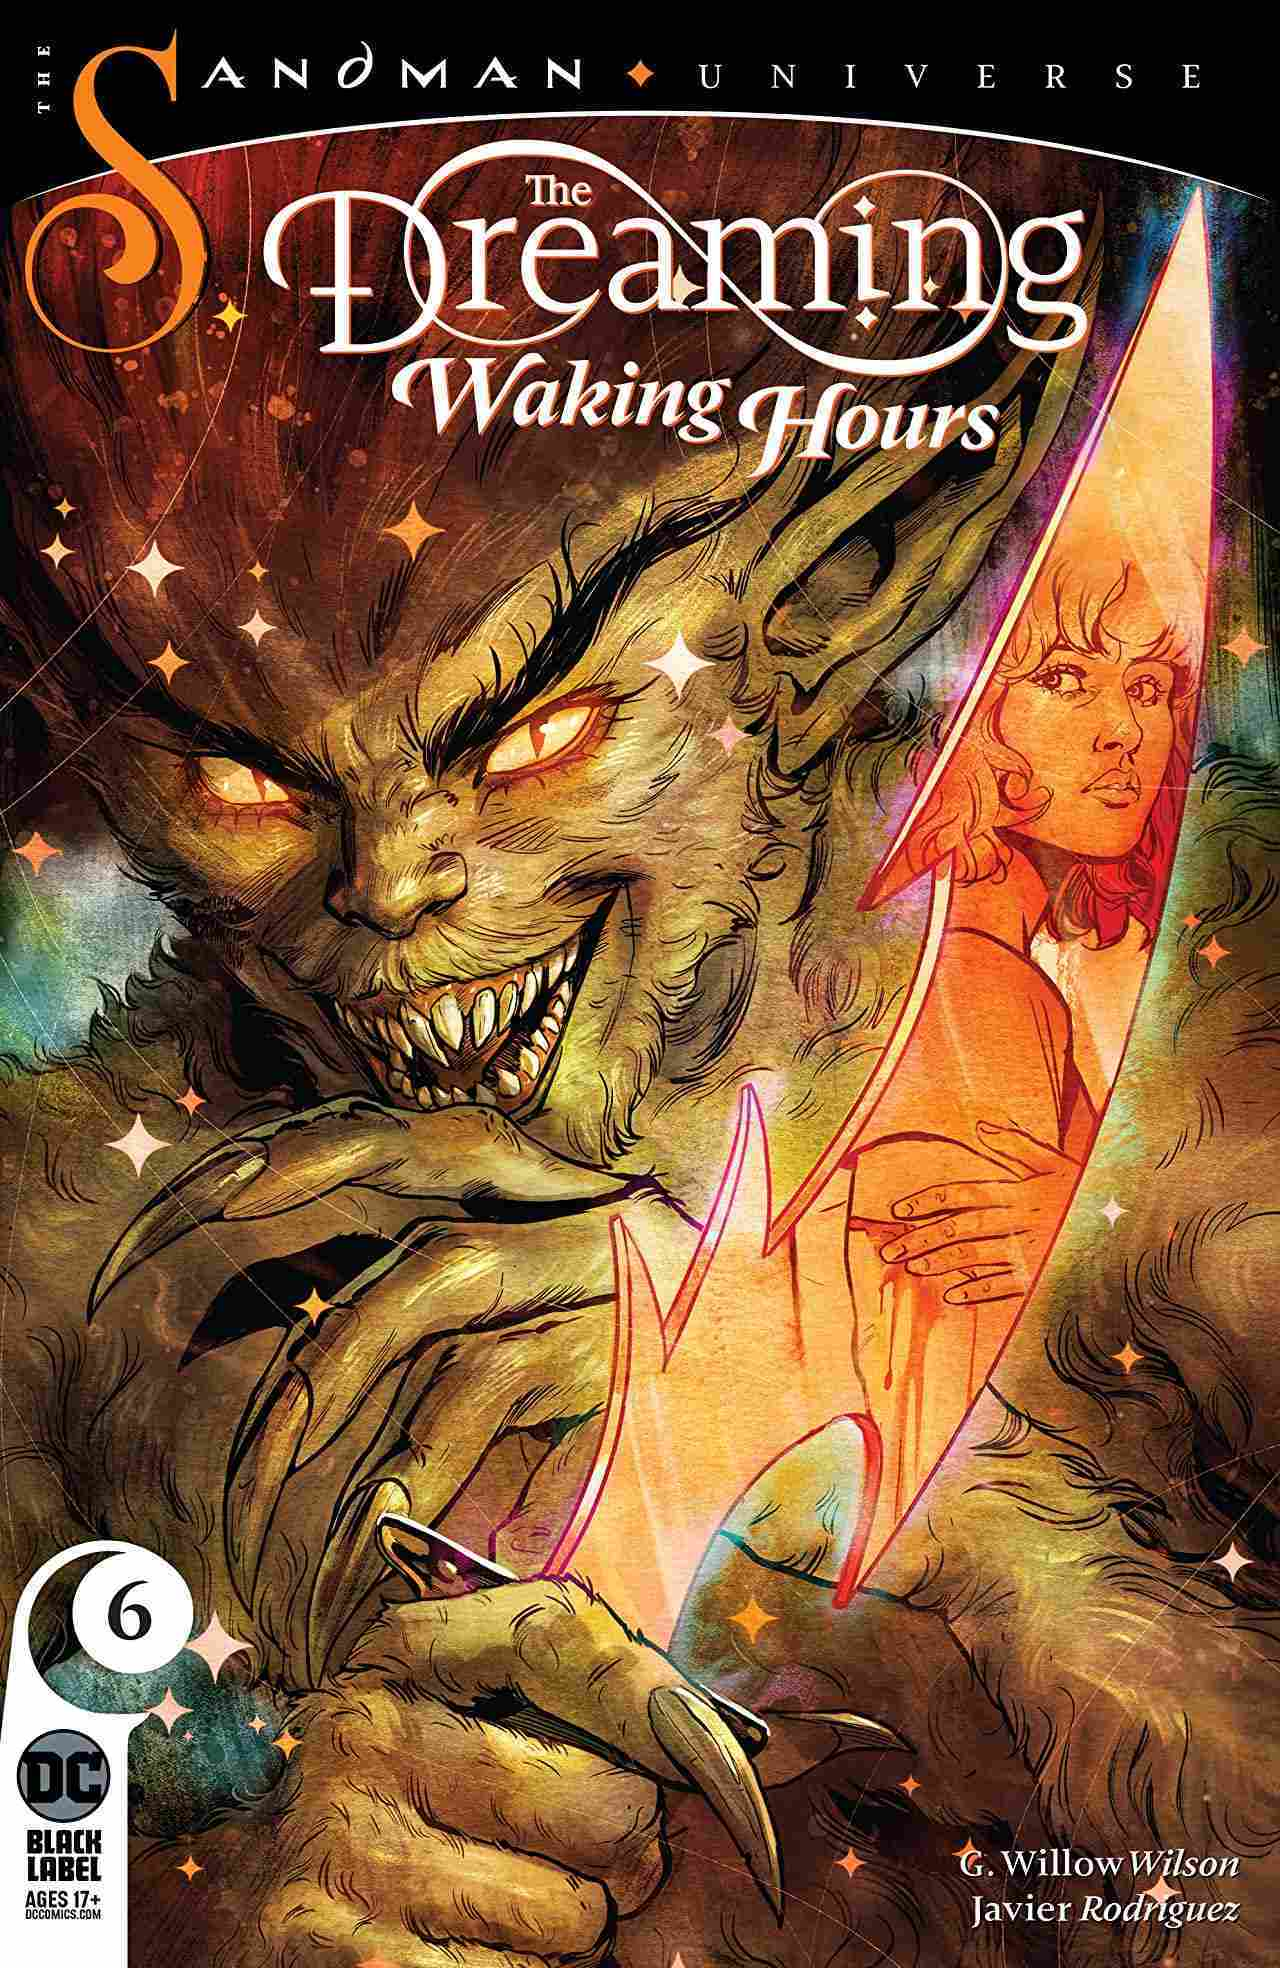 The Dreaming Waking Hours #6